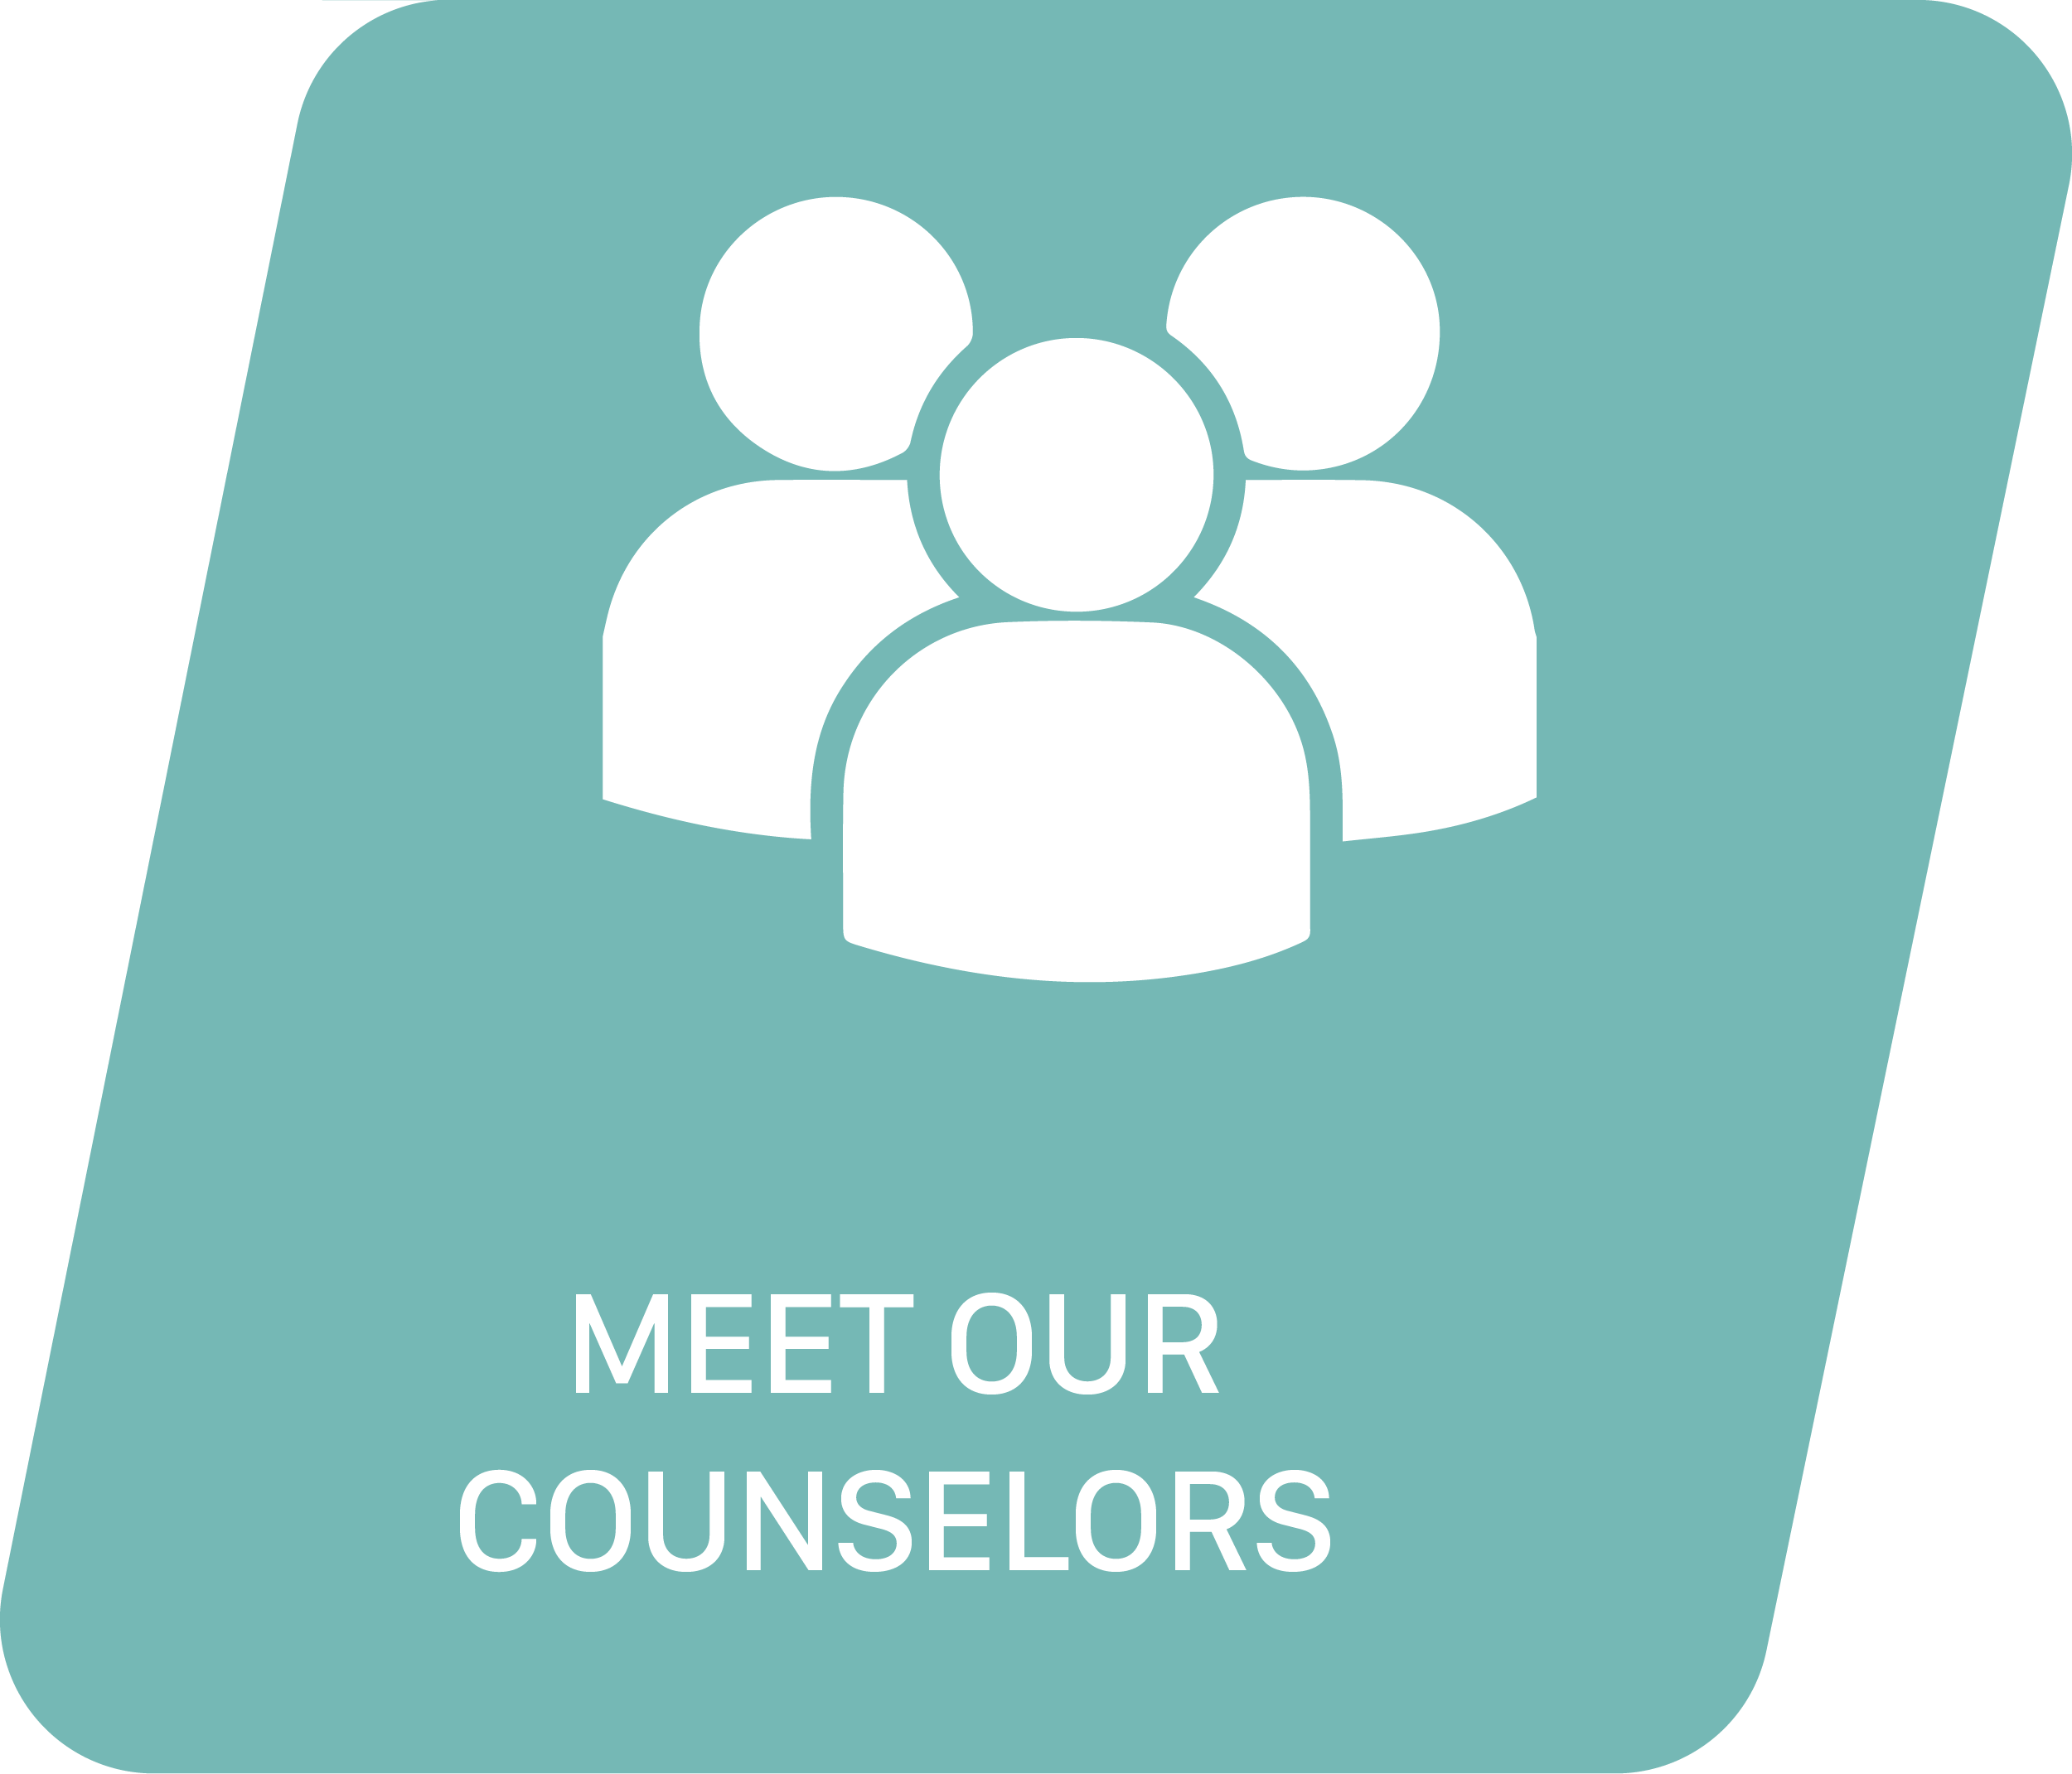 Meet Our Counselors